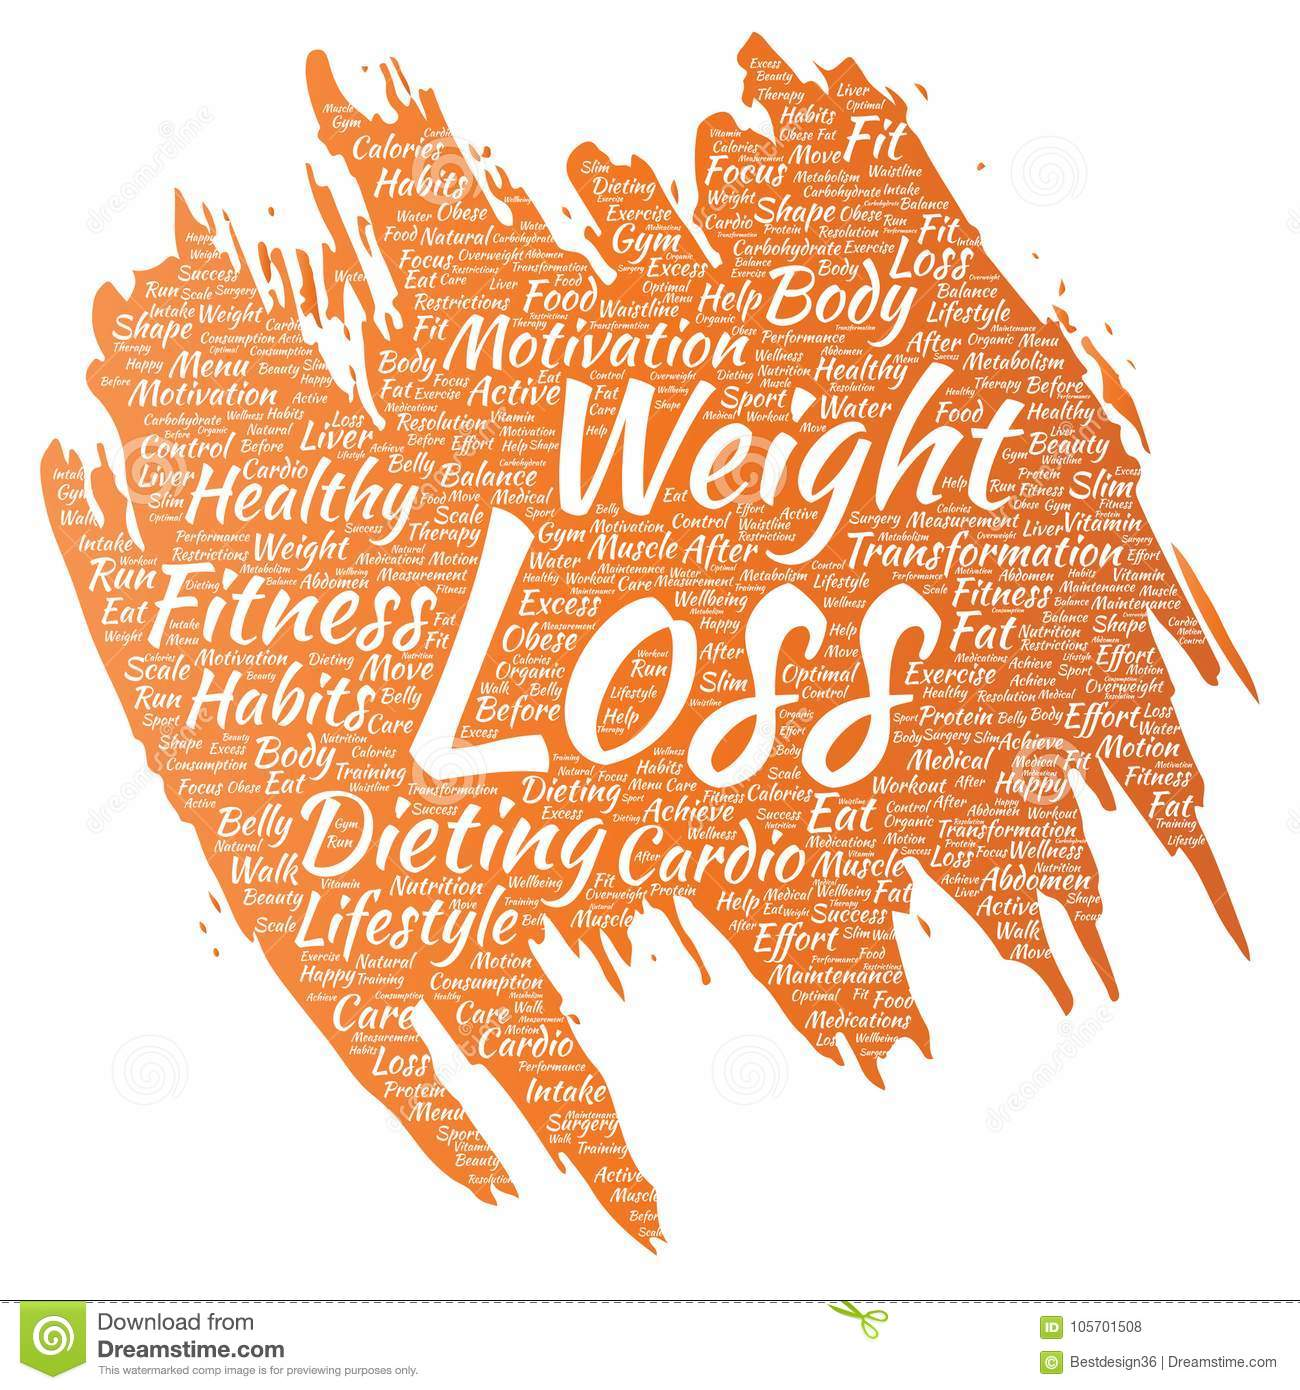 vector conceptual weight loss healthy diet transformation paint